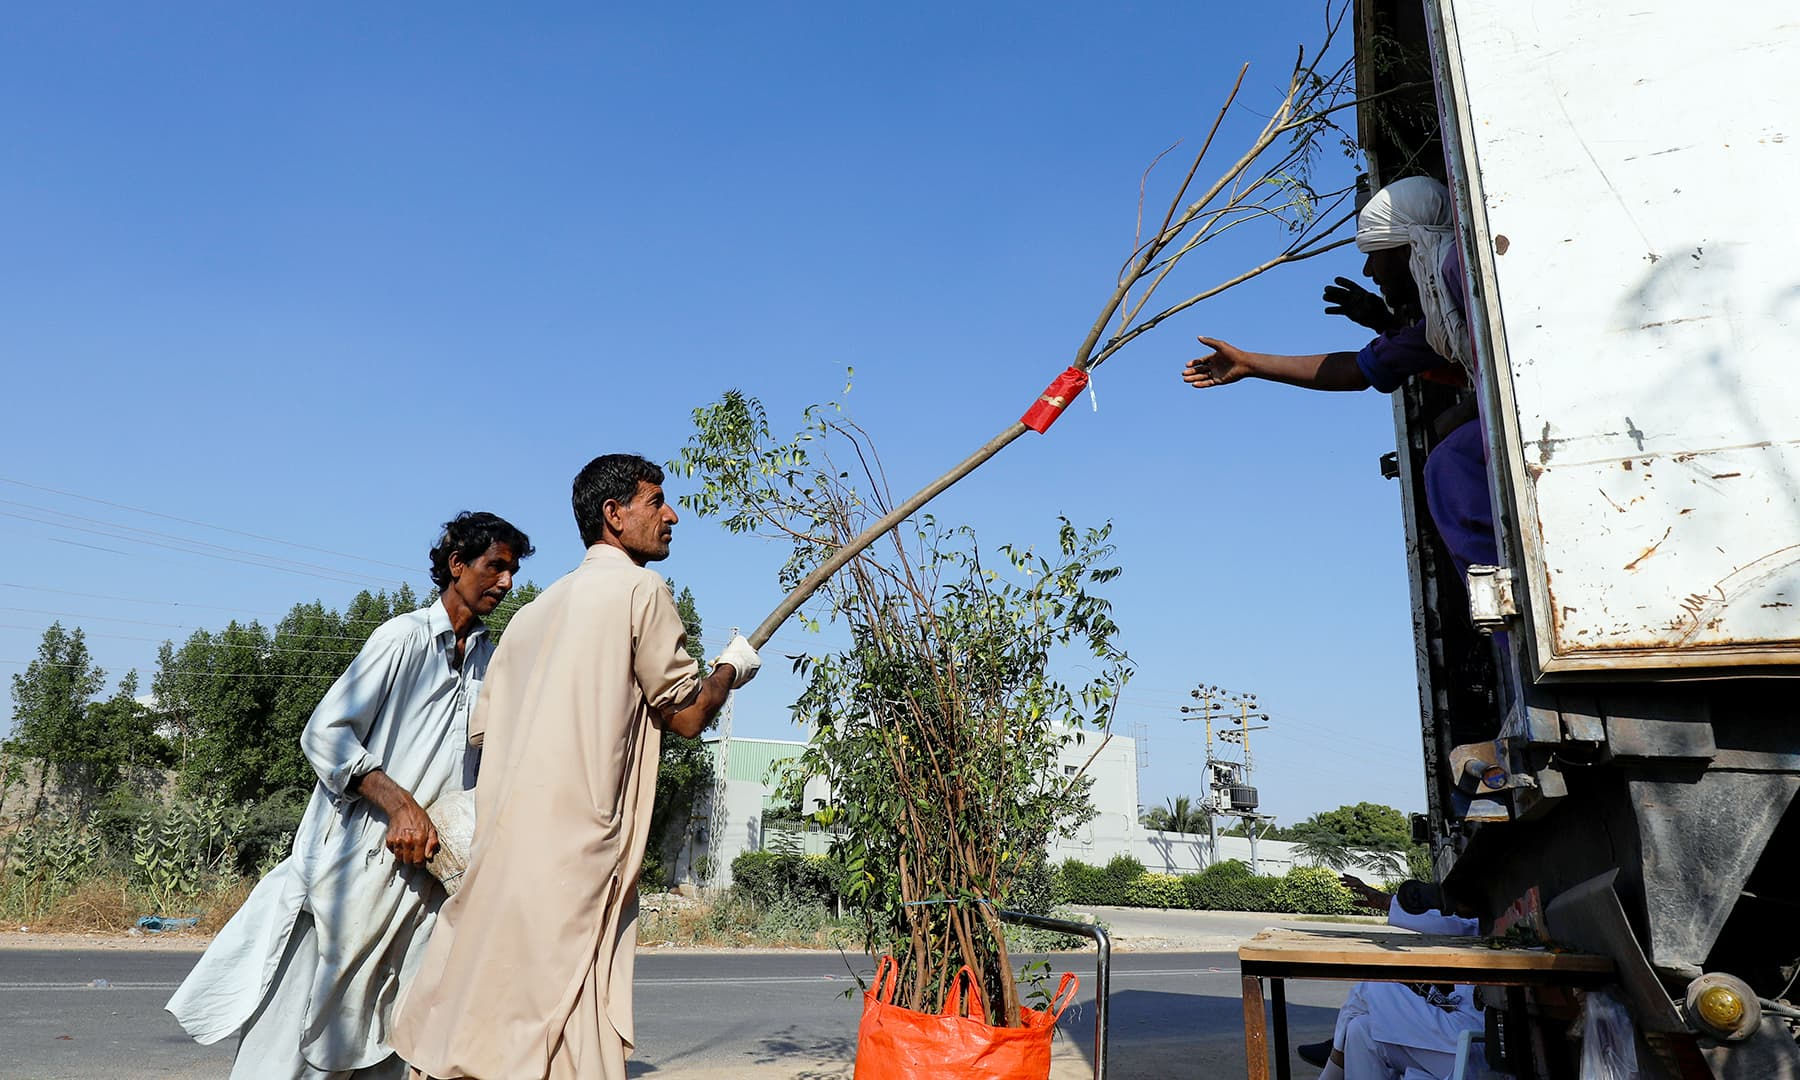 Labourers load a truck with trees and plants to be transported for planting along the pilgrimage route from Najaf to Karbala, at a farm on the outskirts of Karachi, on Friday. — Reuters